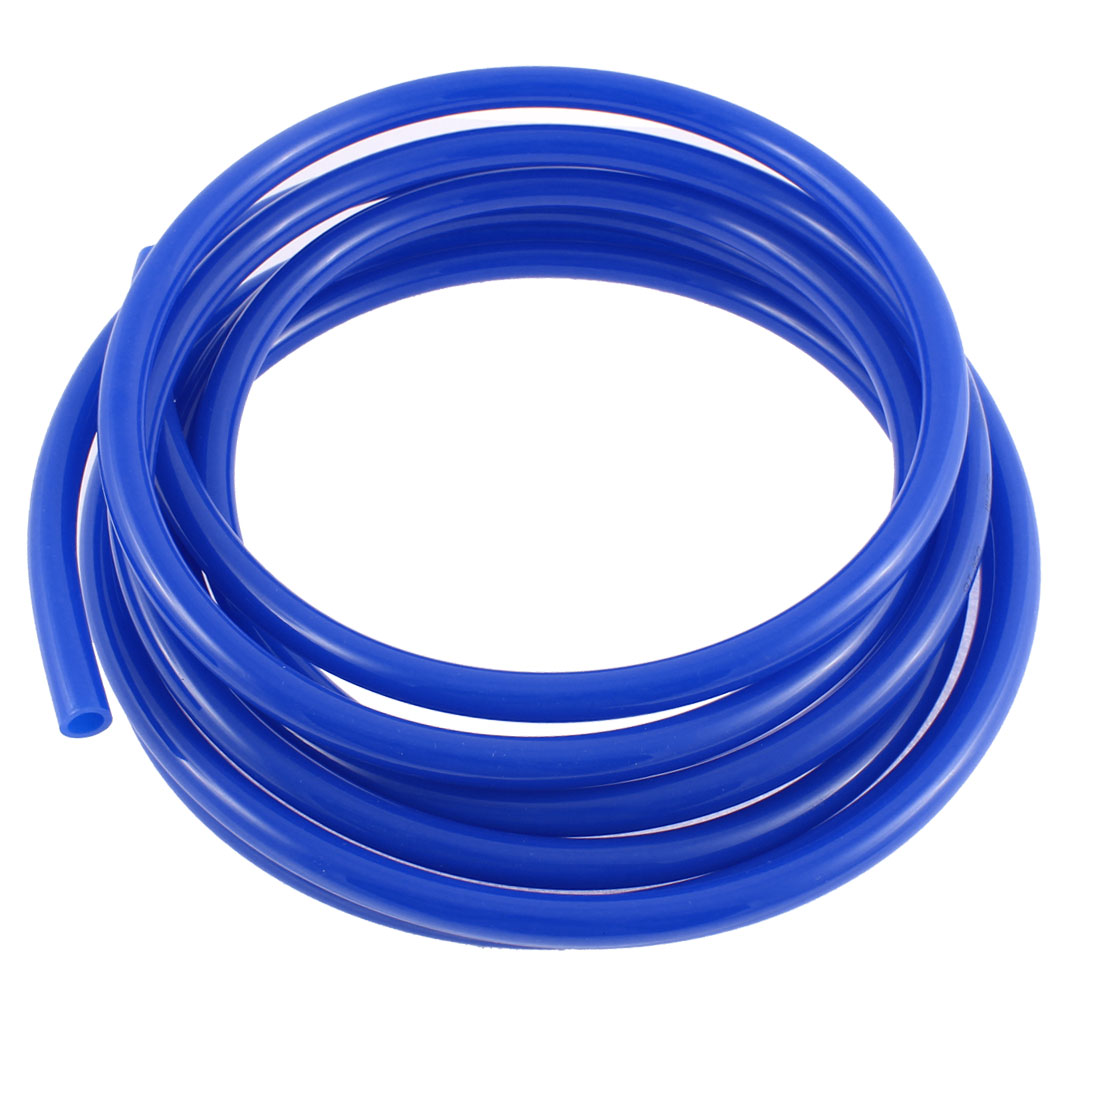 4.8M 16ft Long 12mm x 8mm Blue Polyurethane Flexible Air Tube PU Tubing Pneumatic Pipe Hose